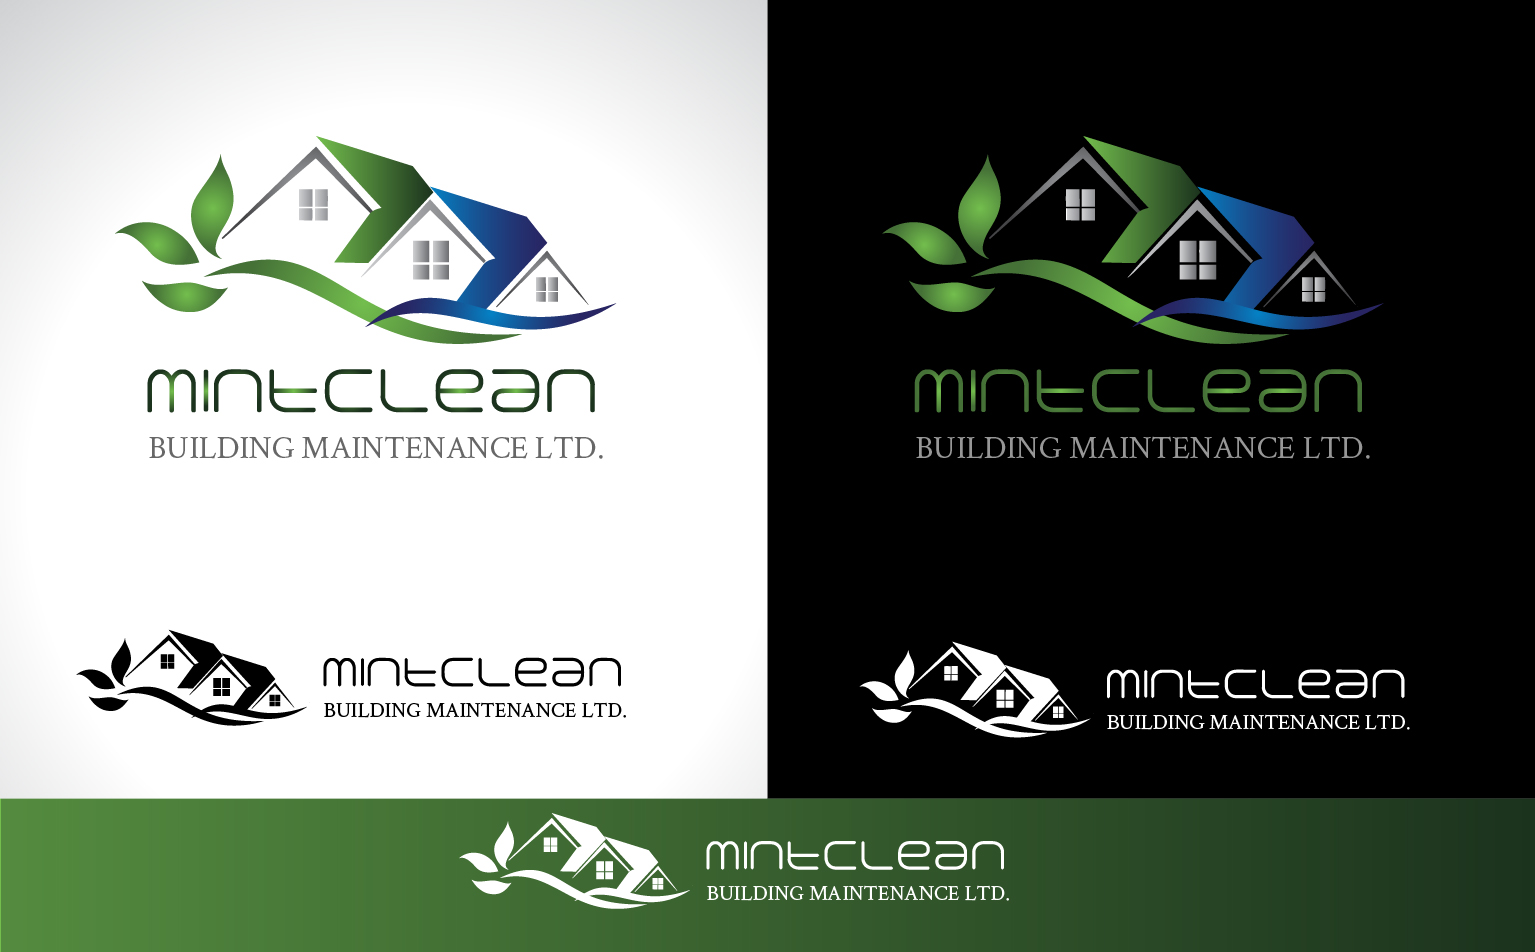 Logo Design by Darina Dimitrova - Entry No. 114 in the Logo Design Contest MintClean Building Maintenance Ltd. Logo Design.